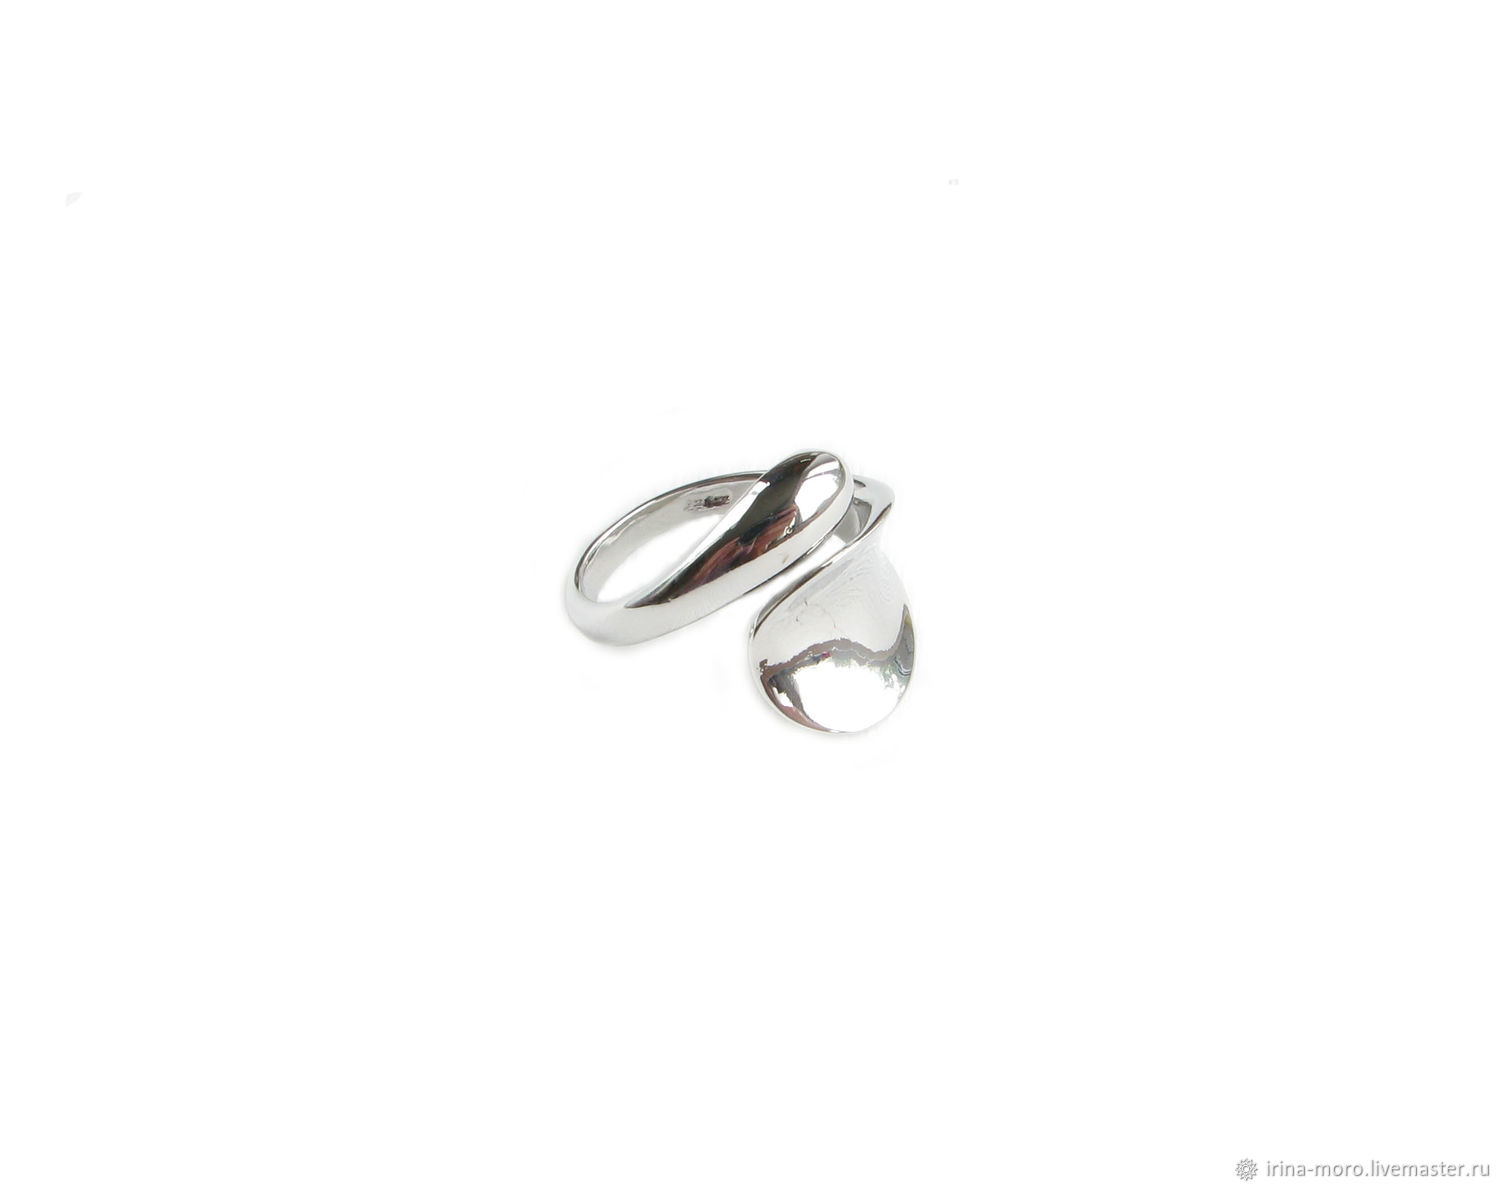 Silver ring without stones, large women's ring gift, Rings, Moscow,  Фото №1